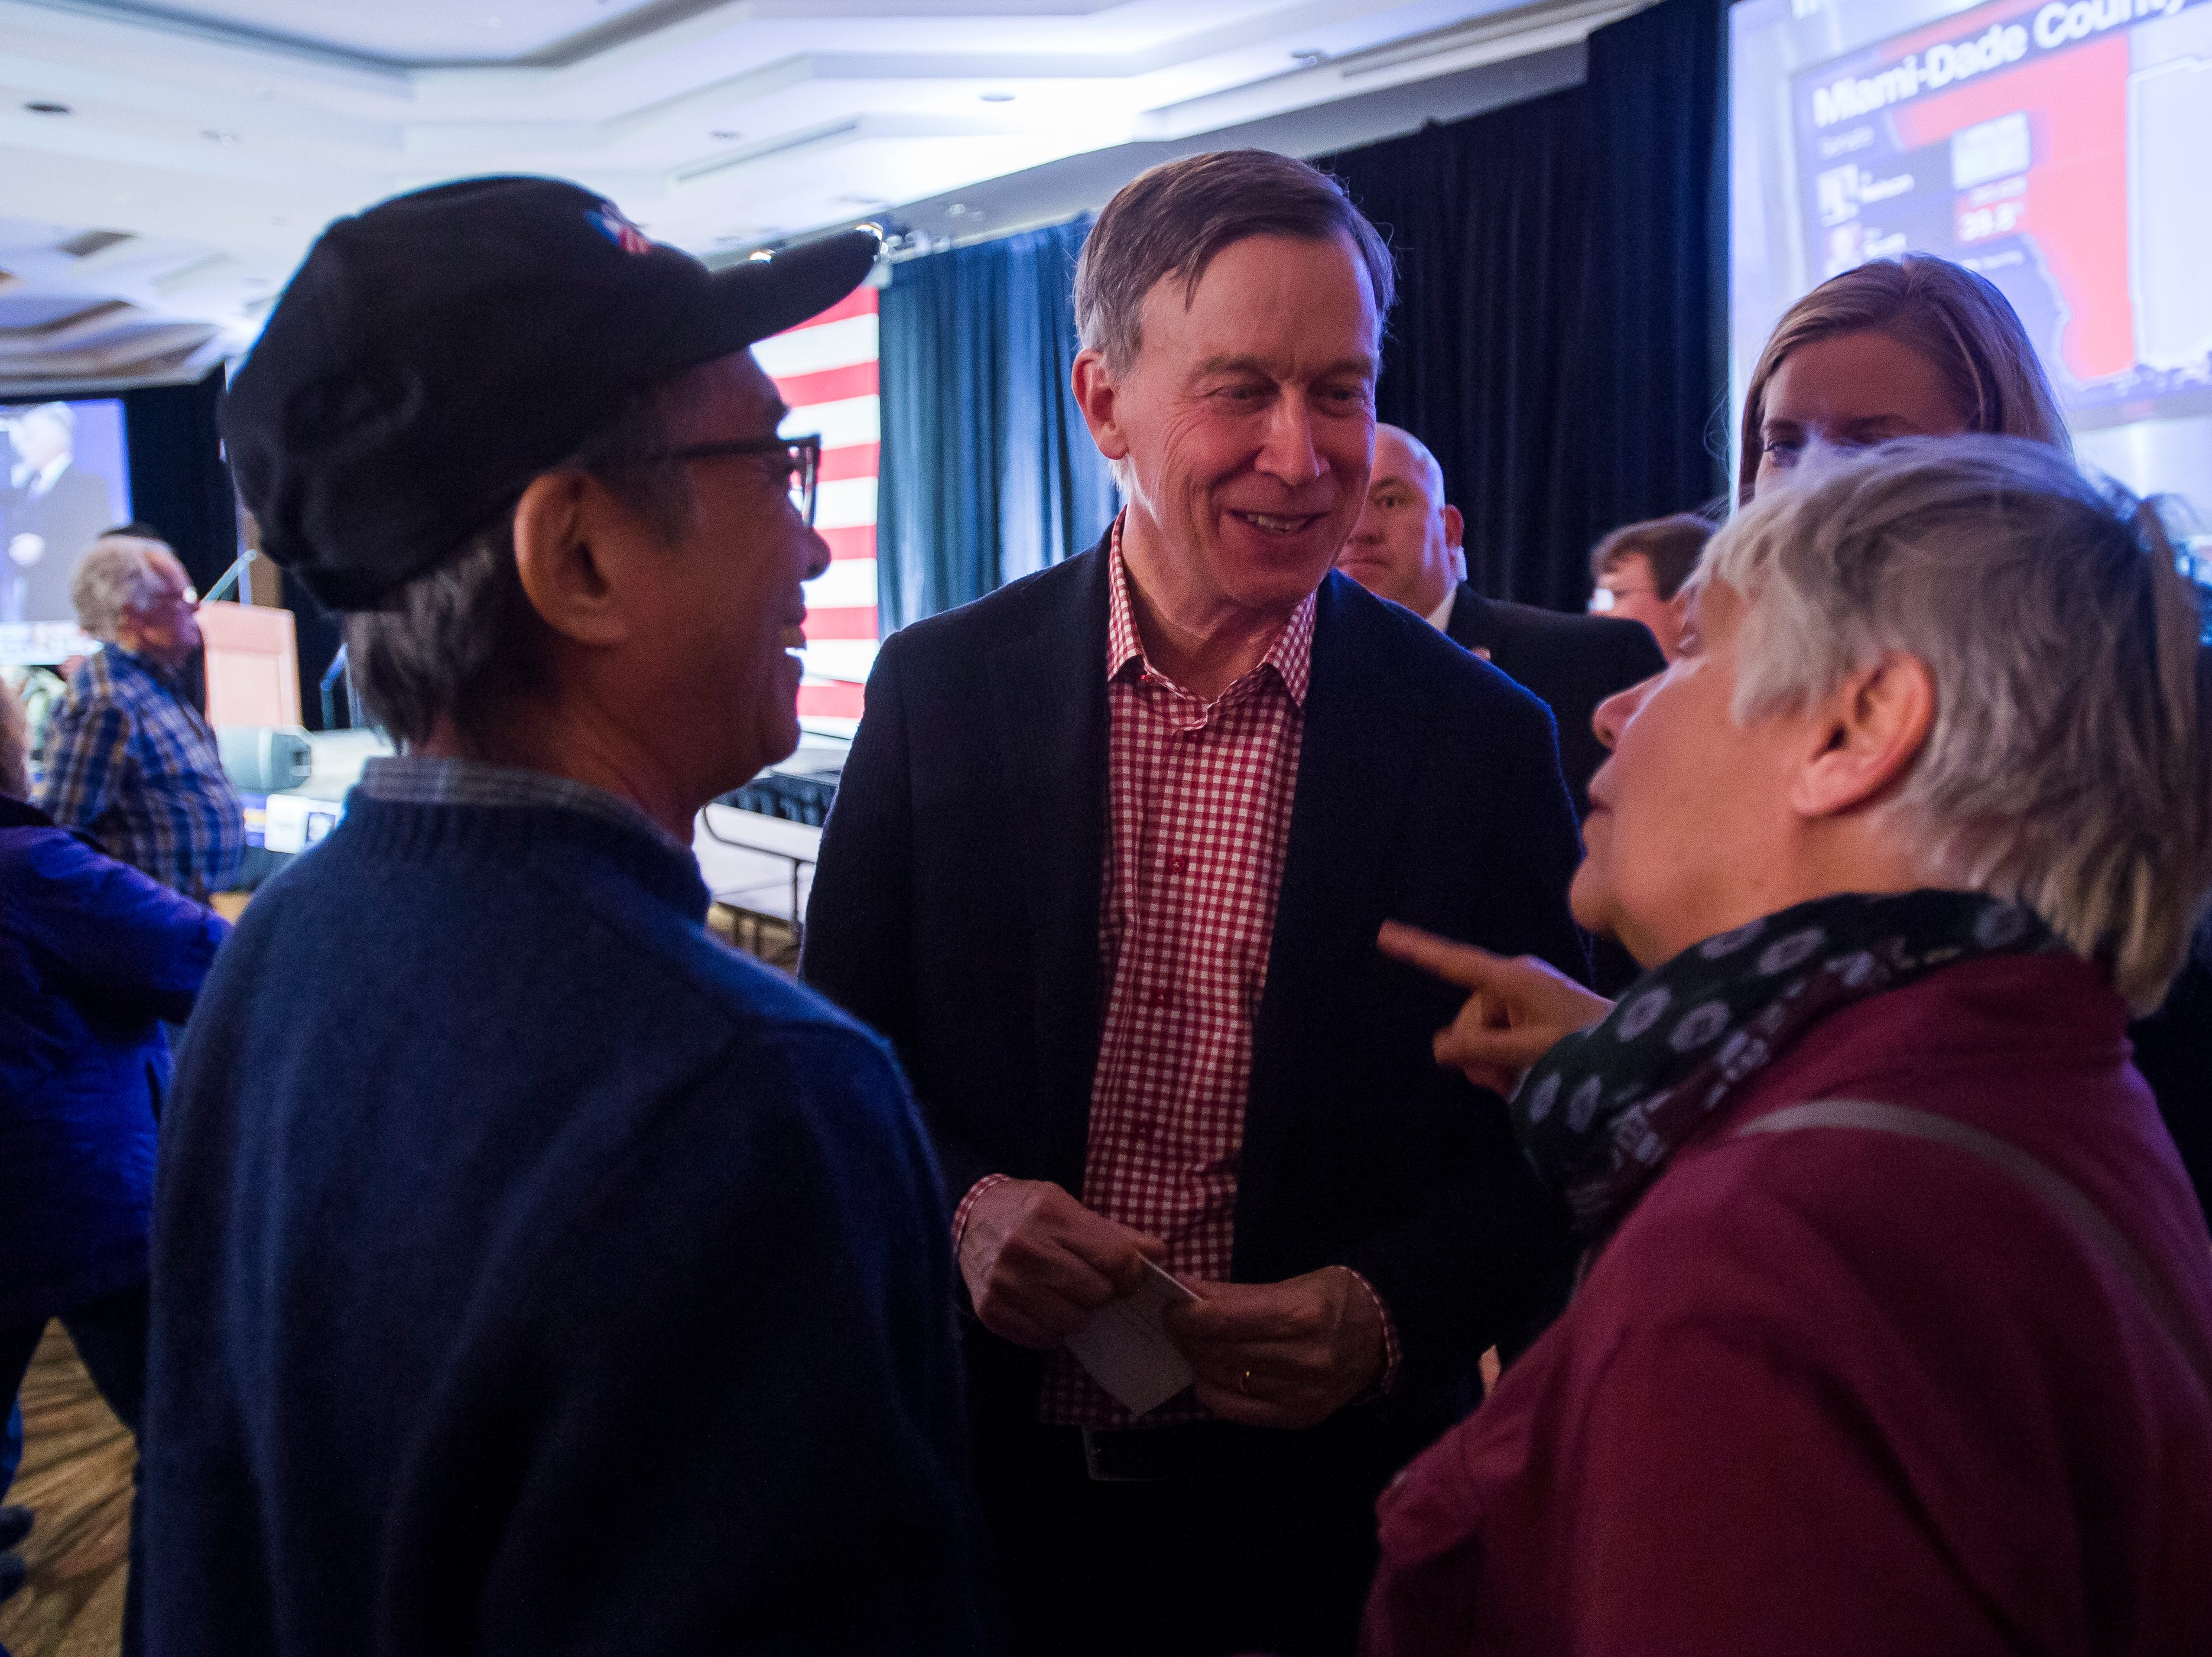 Colorado Governor John Hickenlooper talks with friends Alan O'Hashi and Diana Helzer before an election watch party for Democratic candidate for Colorado governor Jared Polis on Tuesday, Nov. 6, 2018, at the Westin Denver Downtown hotel in Denver, Colo.